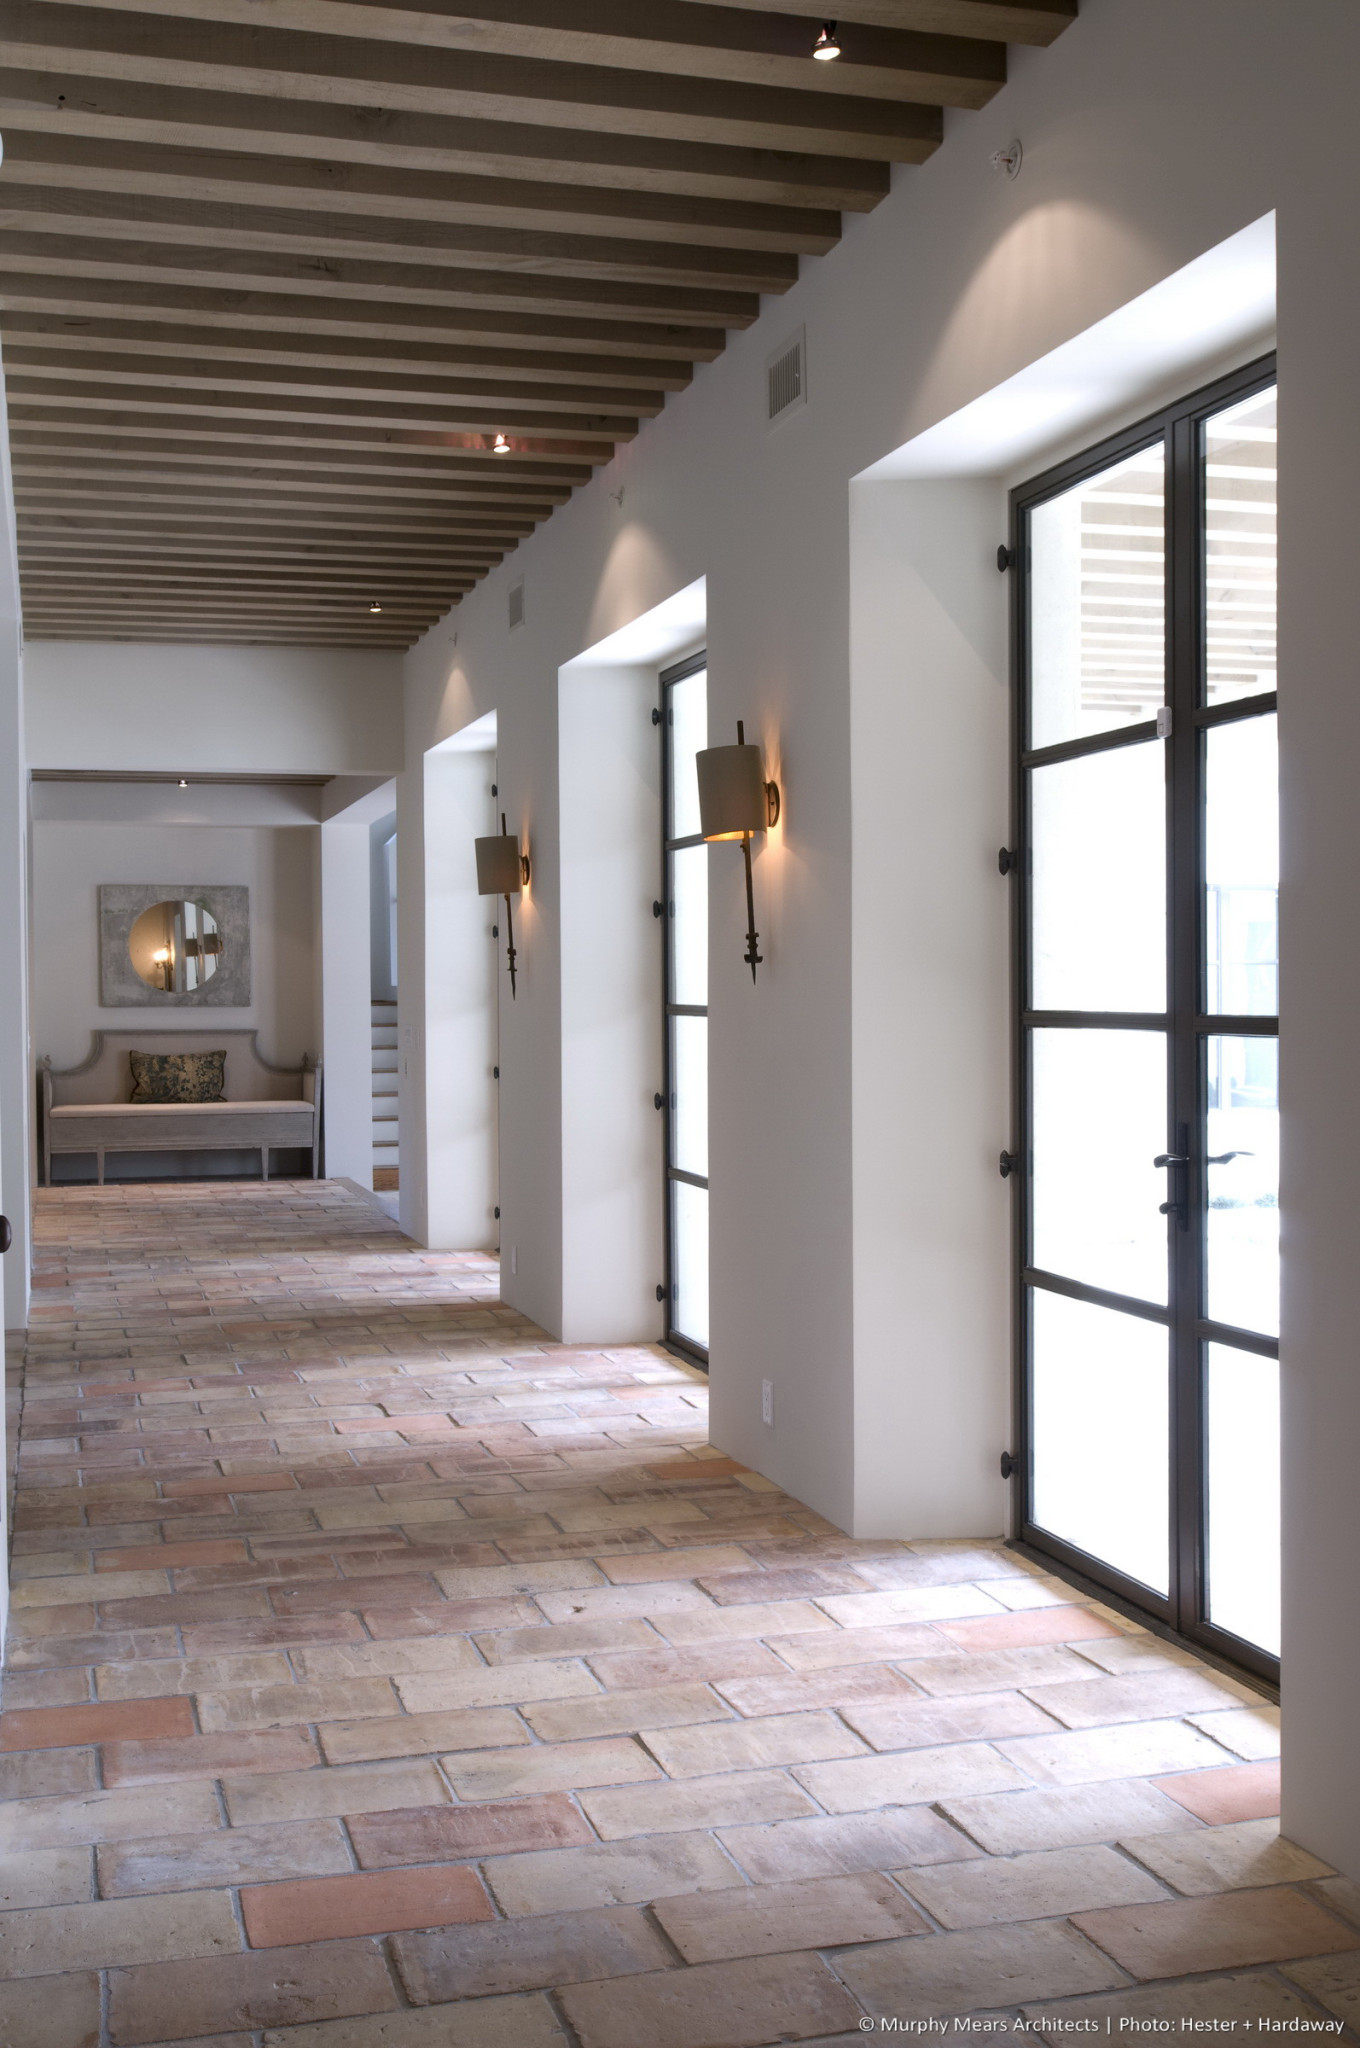 Lindenwood Residence - Main central corridor with imported terra cotta tile and a load-bearing wood beam ceiling structure milled from trees grown on site.